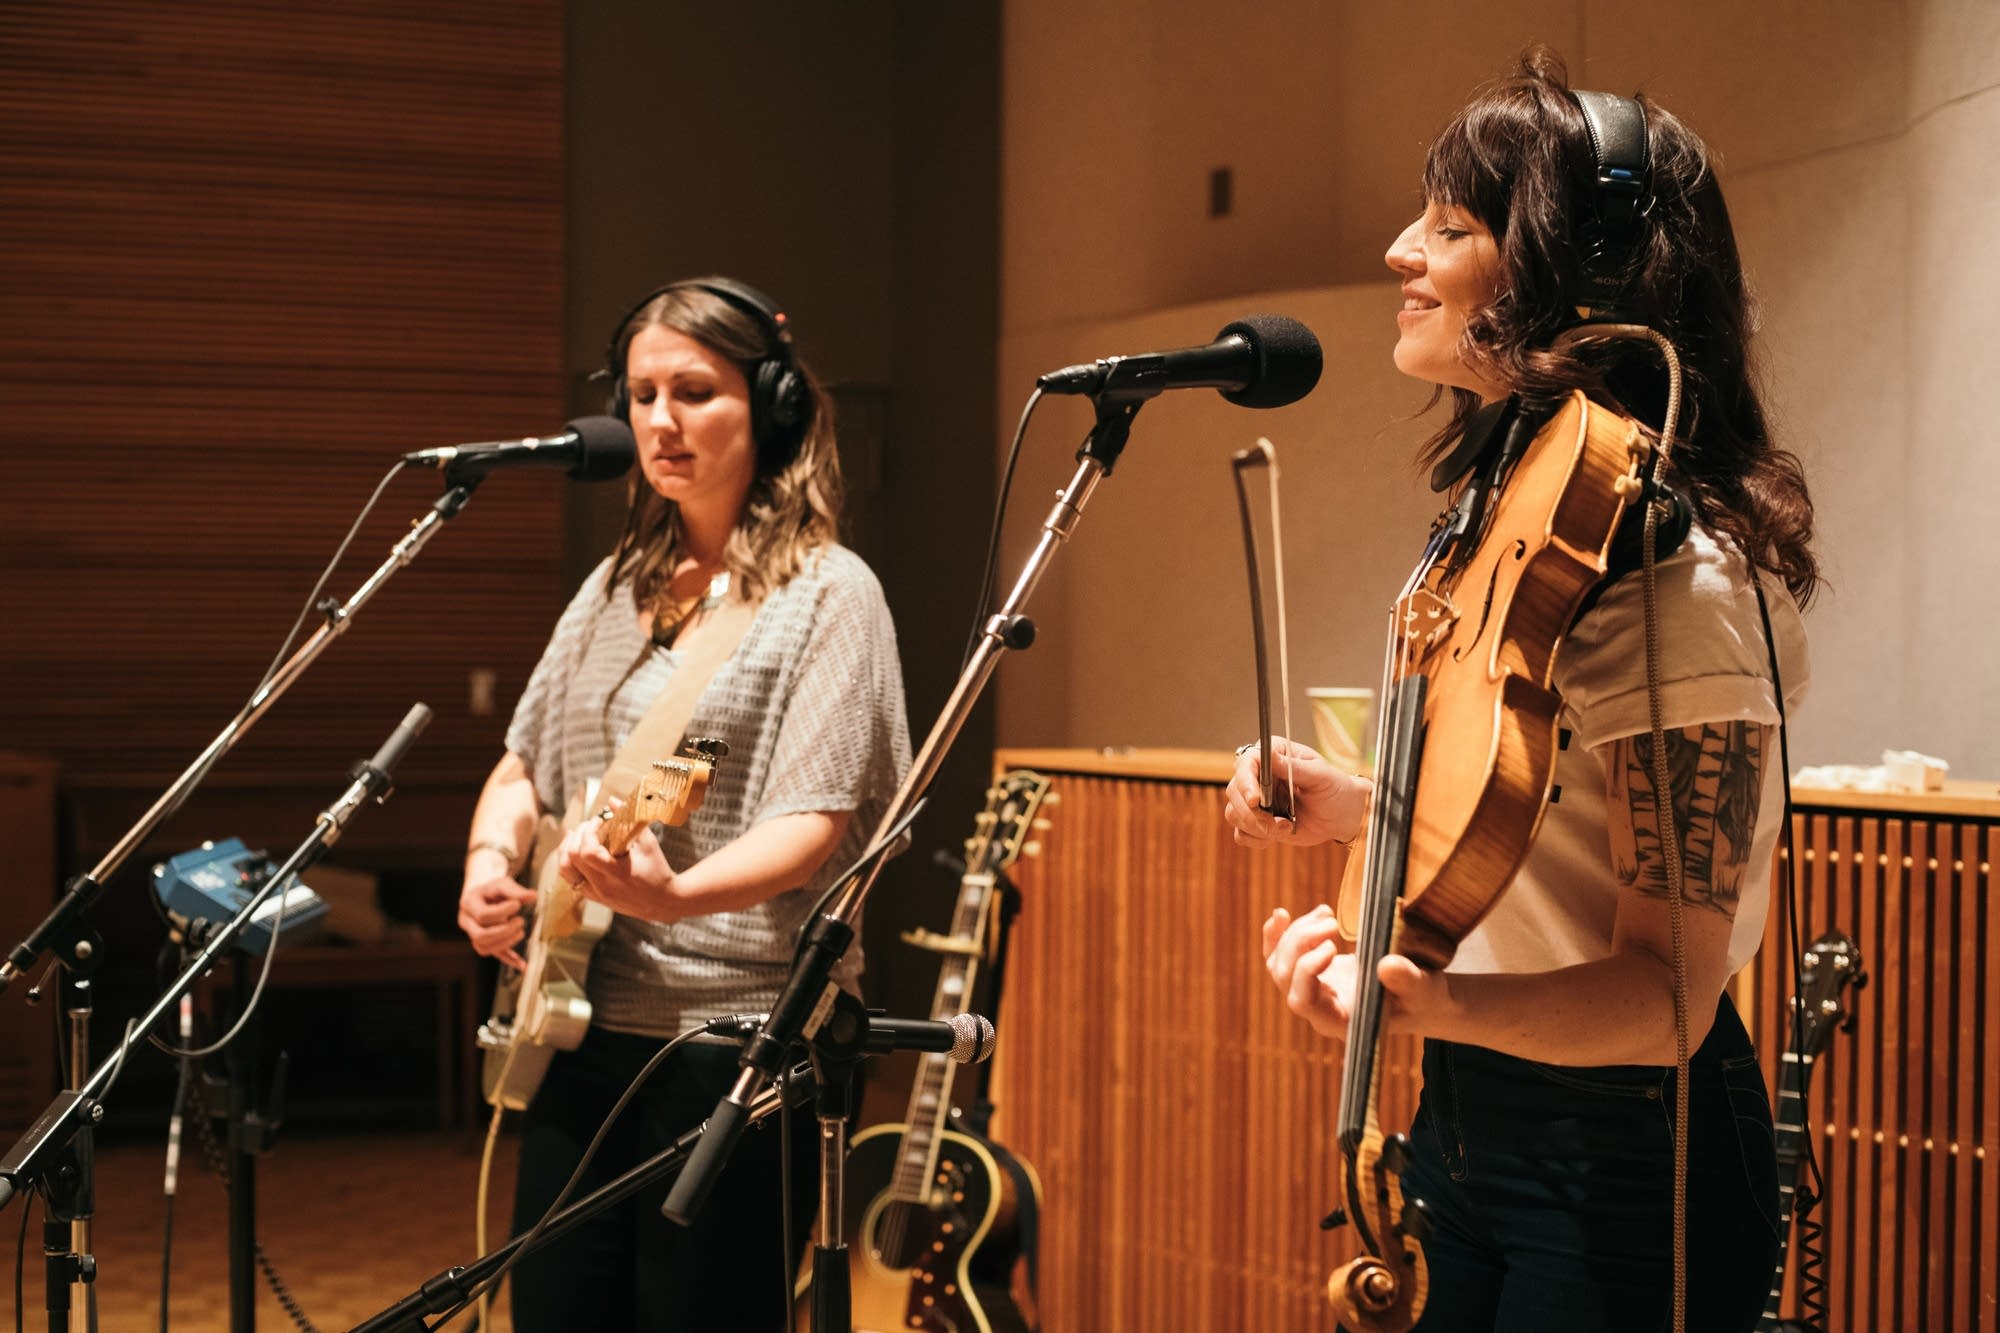 Dusty Heart perform in The Current's studio